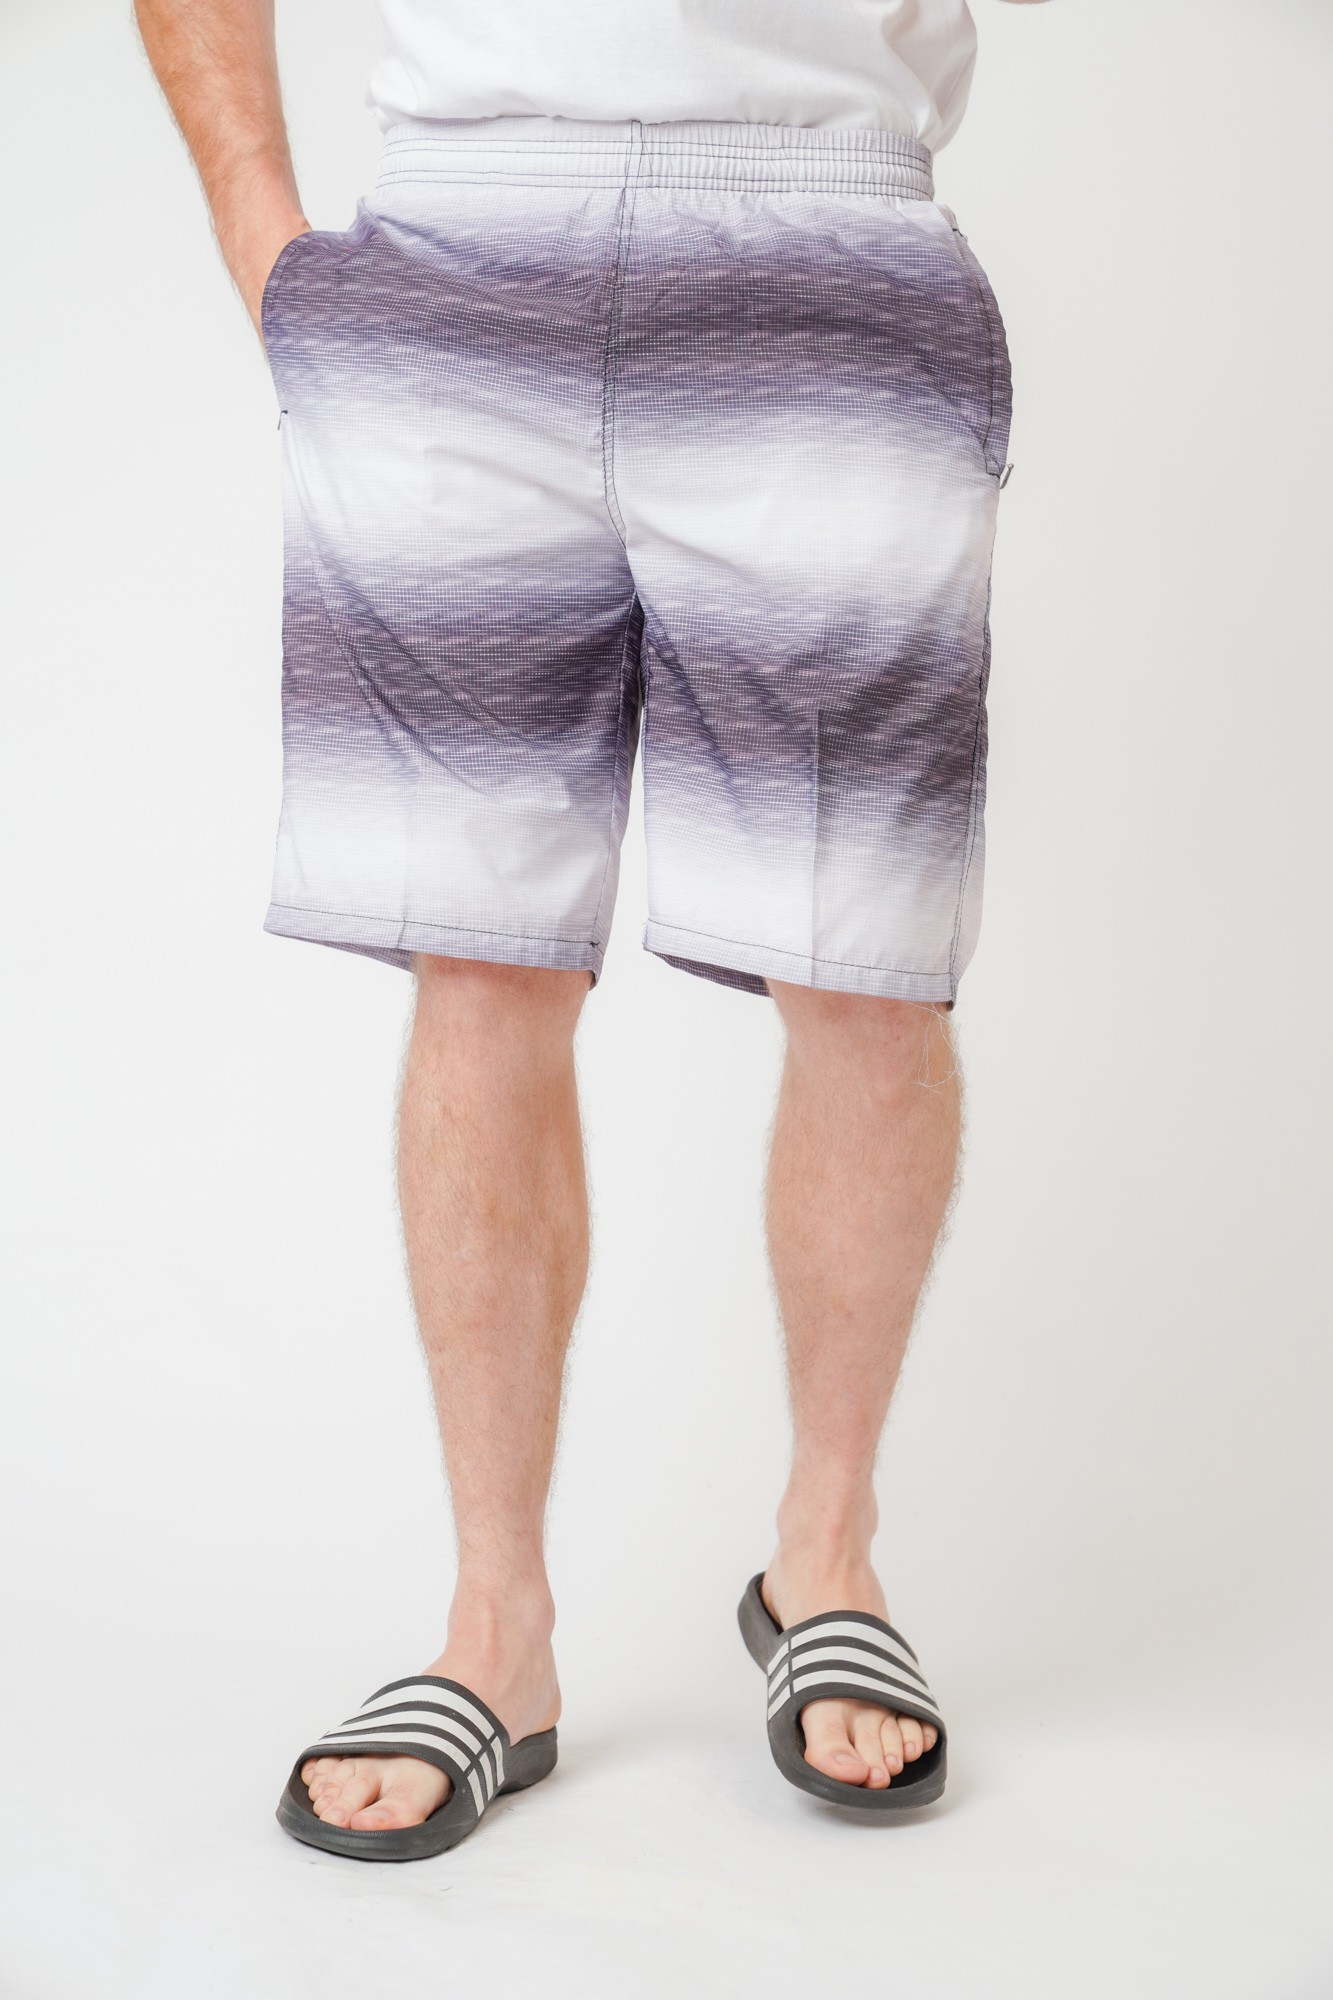 Graphic Shorts Style 1